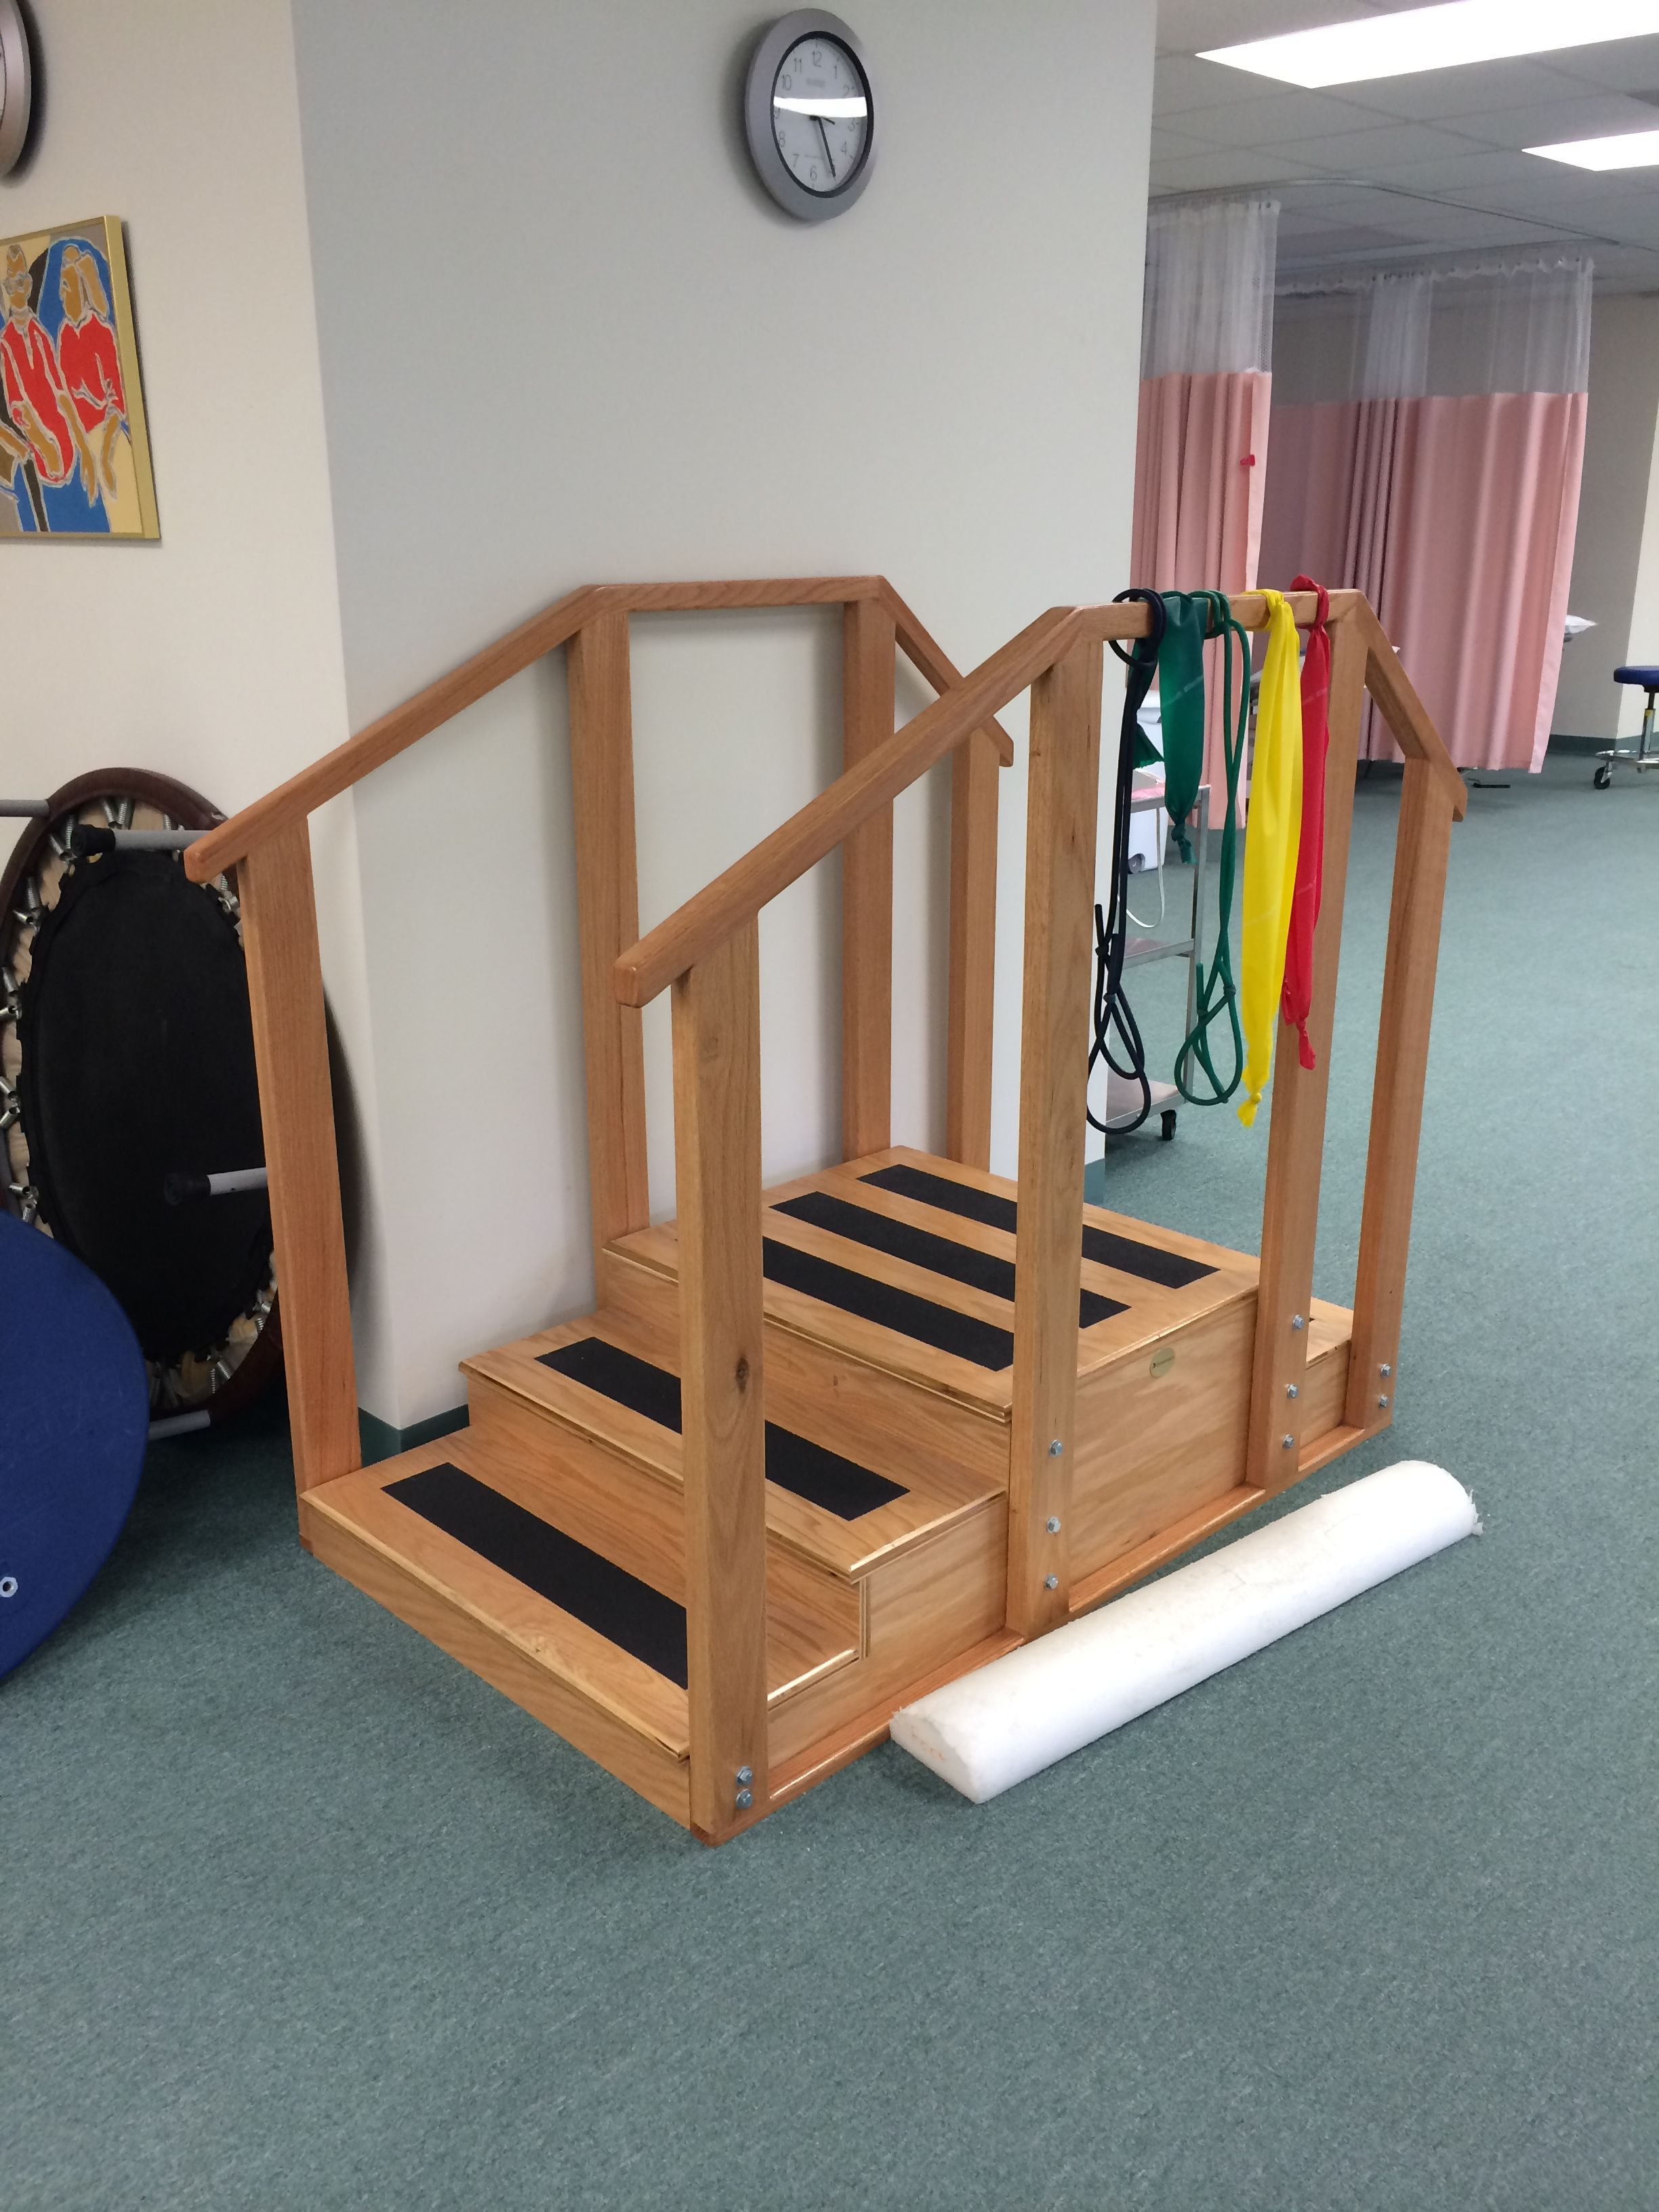 Physical therapy rehab/training stairs. Home decor